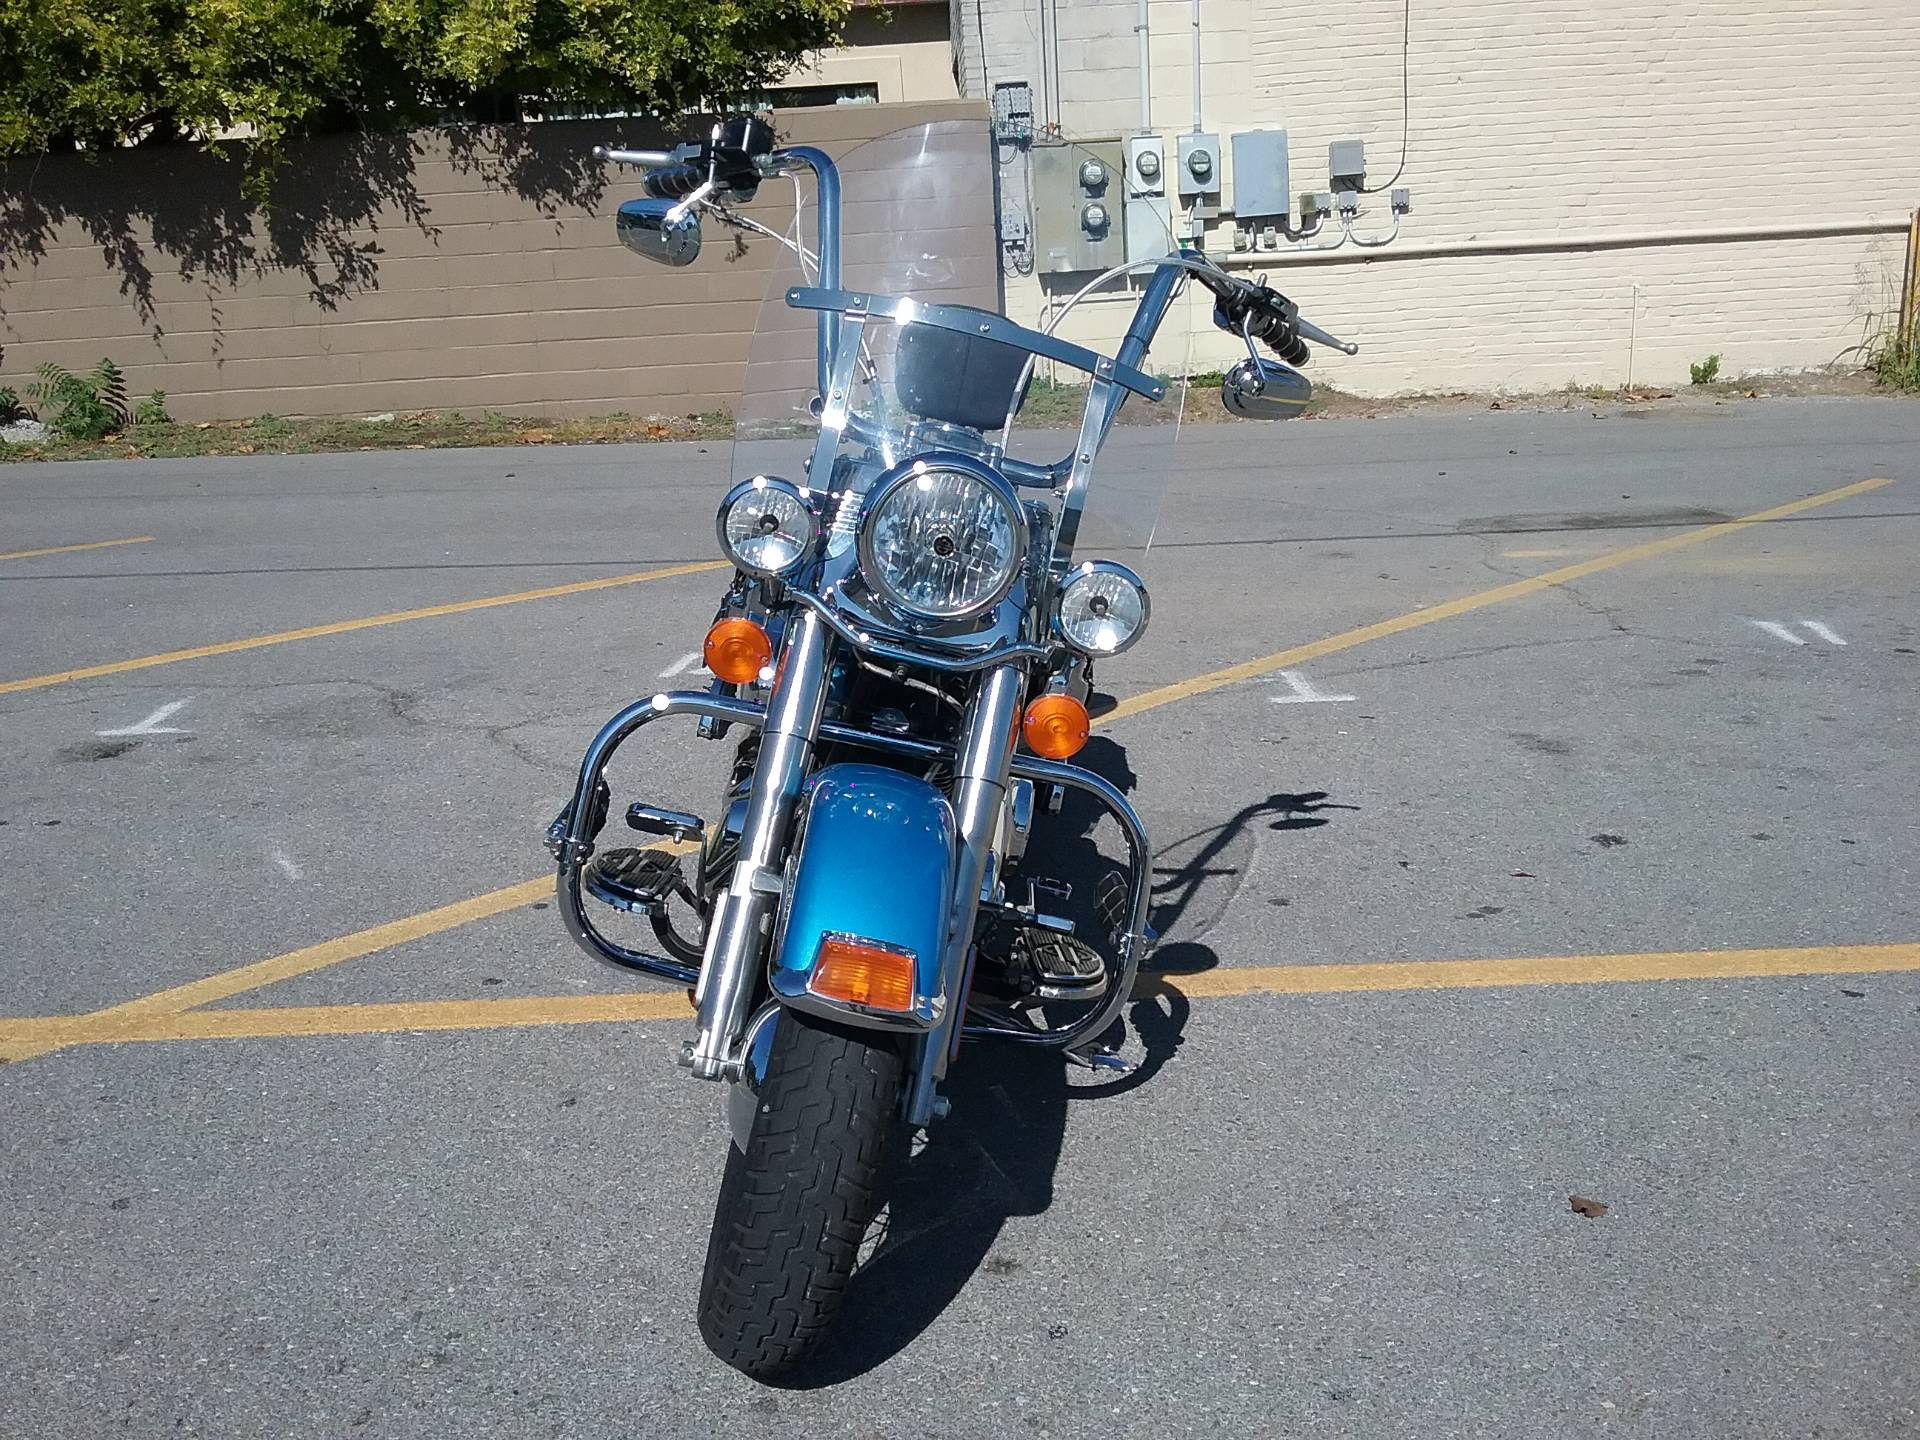 2011 Harley-Davidson Heritage Softail® Classic in Cape Girardeau, Missouri - Photo 5